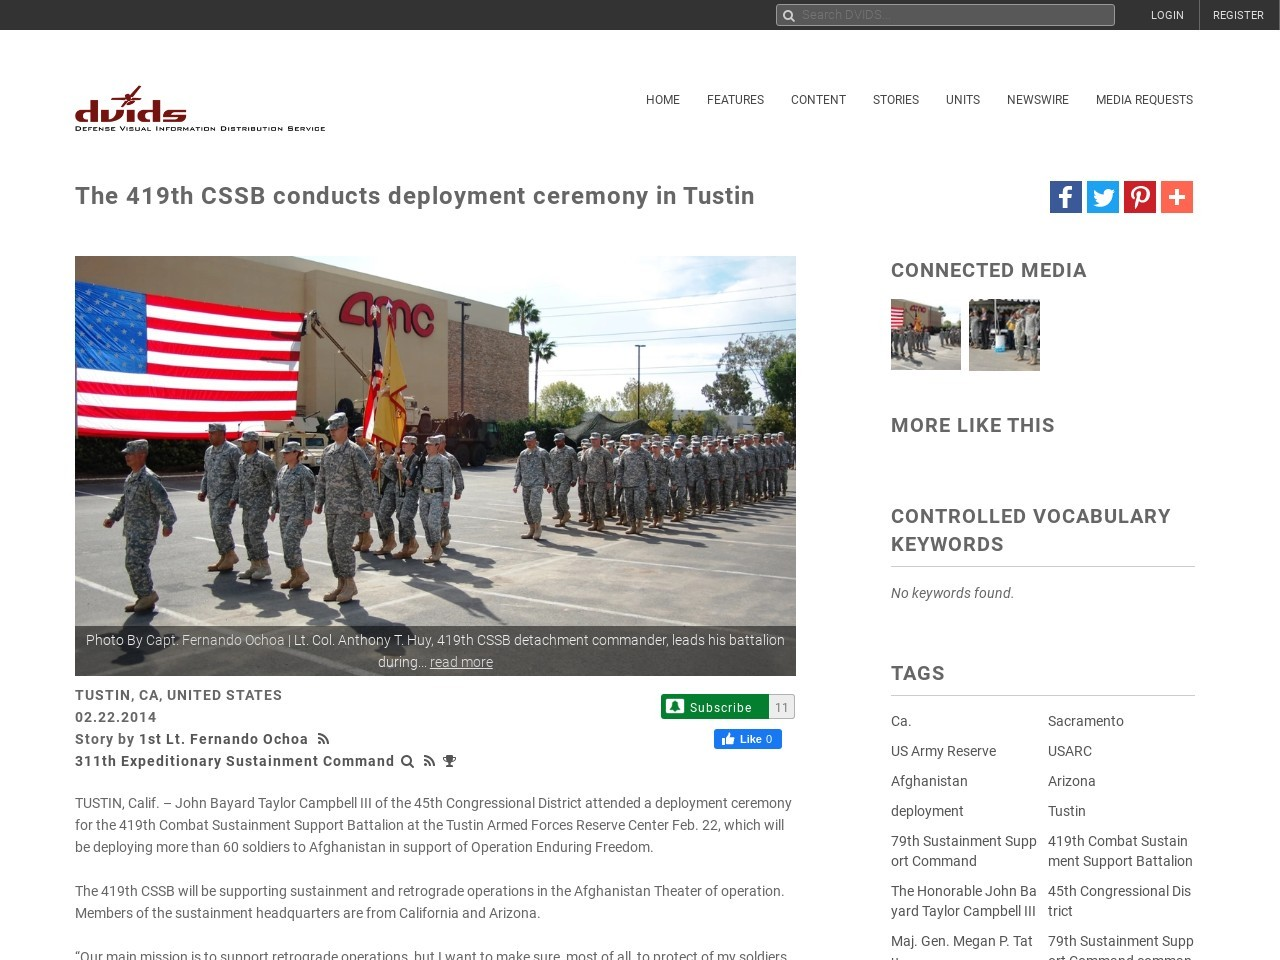 The 314th CSSB conducts deployment ceremony in Tustin